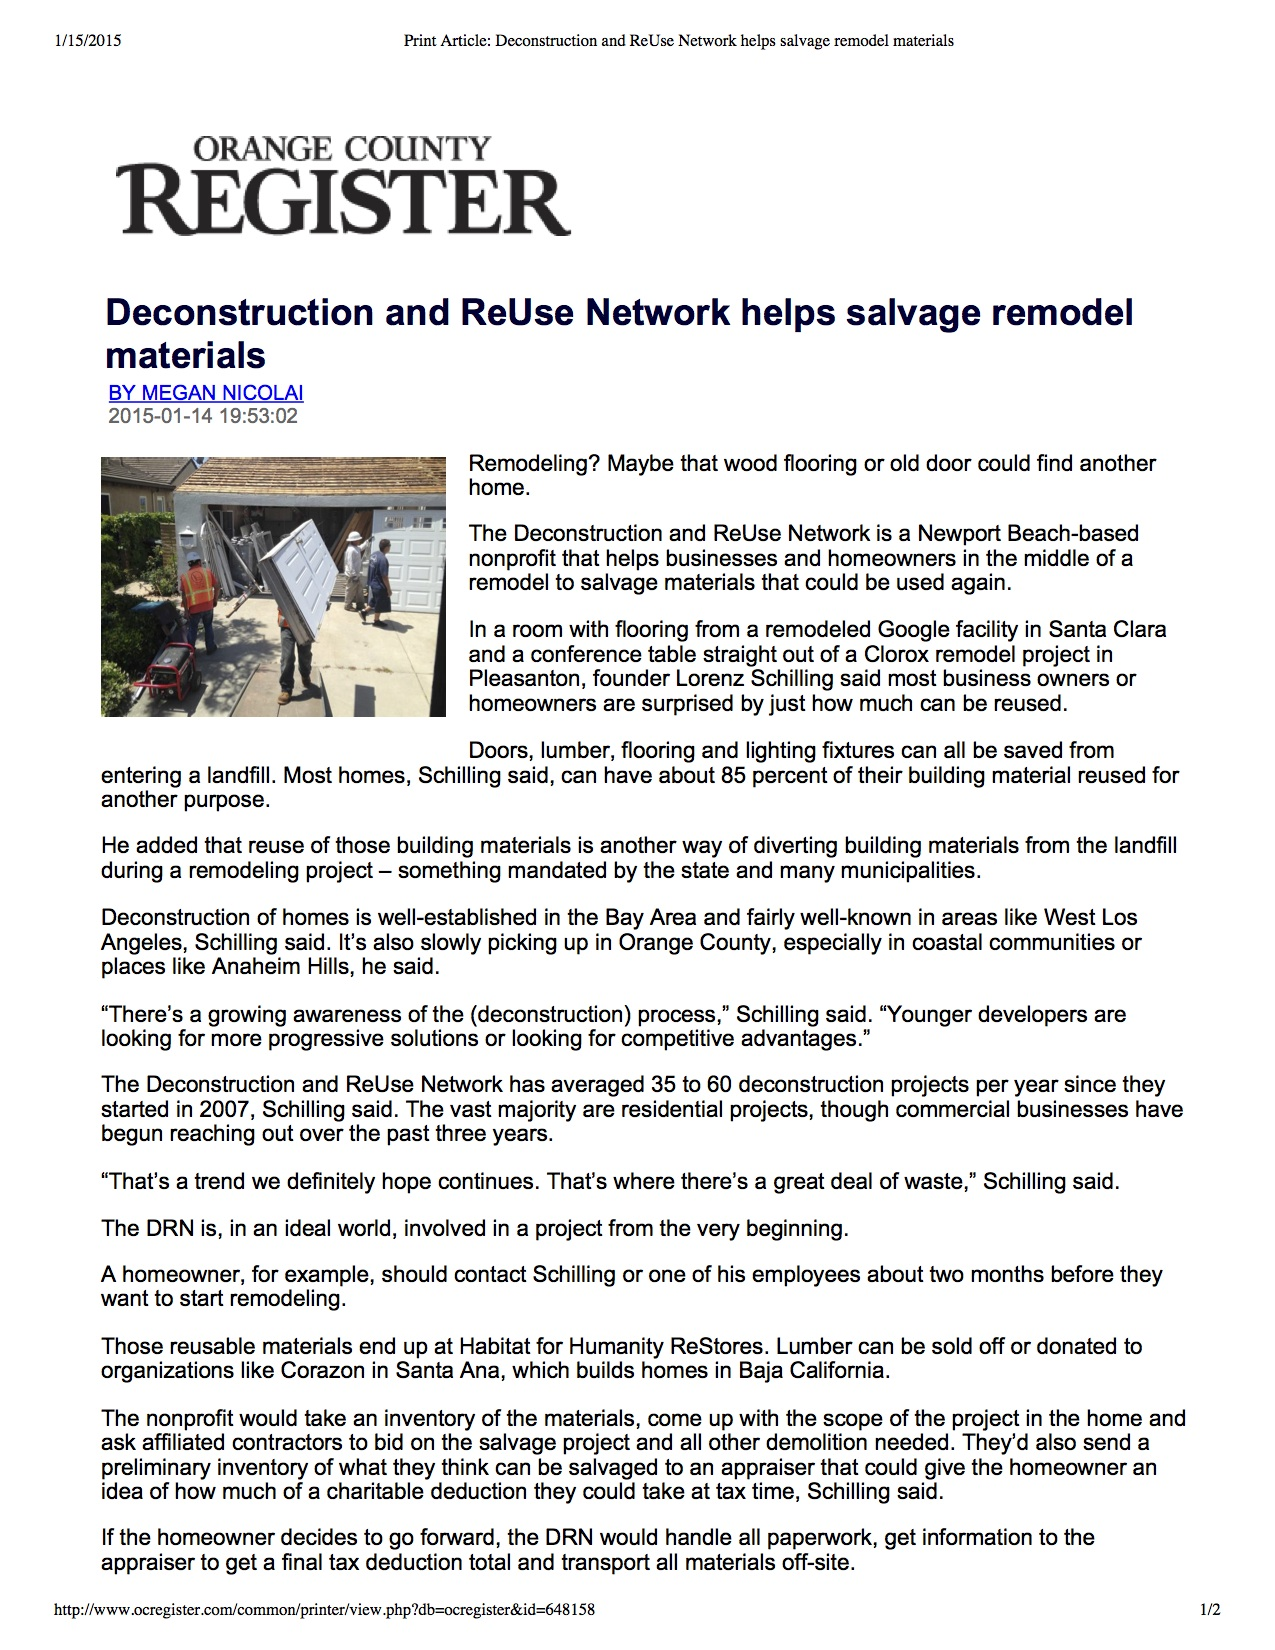 01-15-15 Print Article_ Deconstruction and ReUse Network helps salvage remodel materials